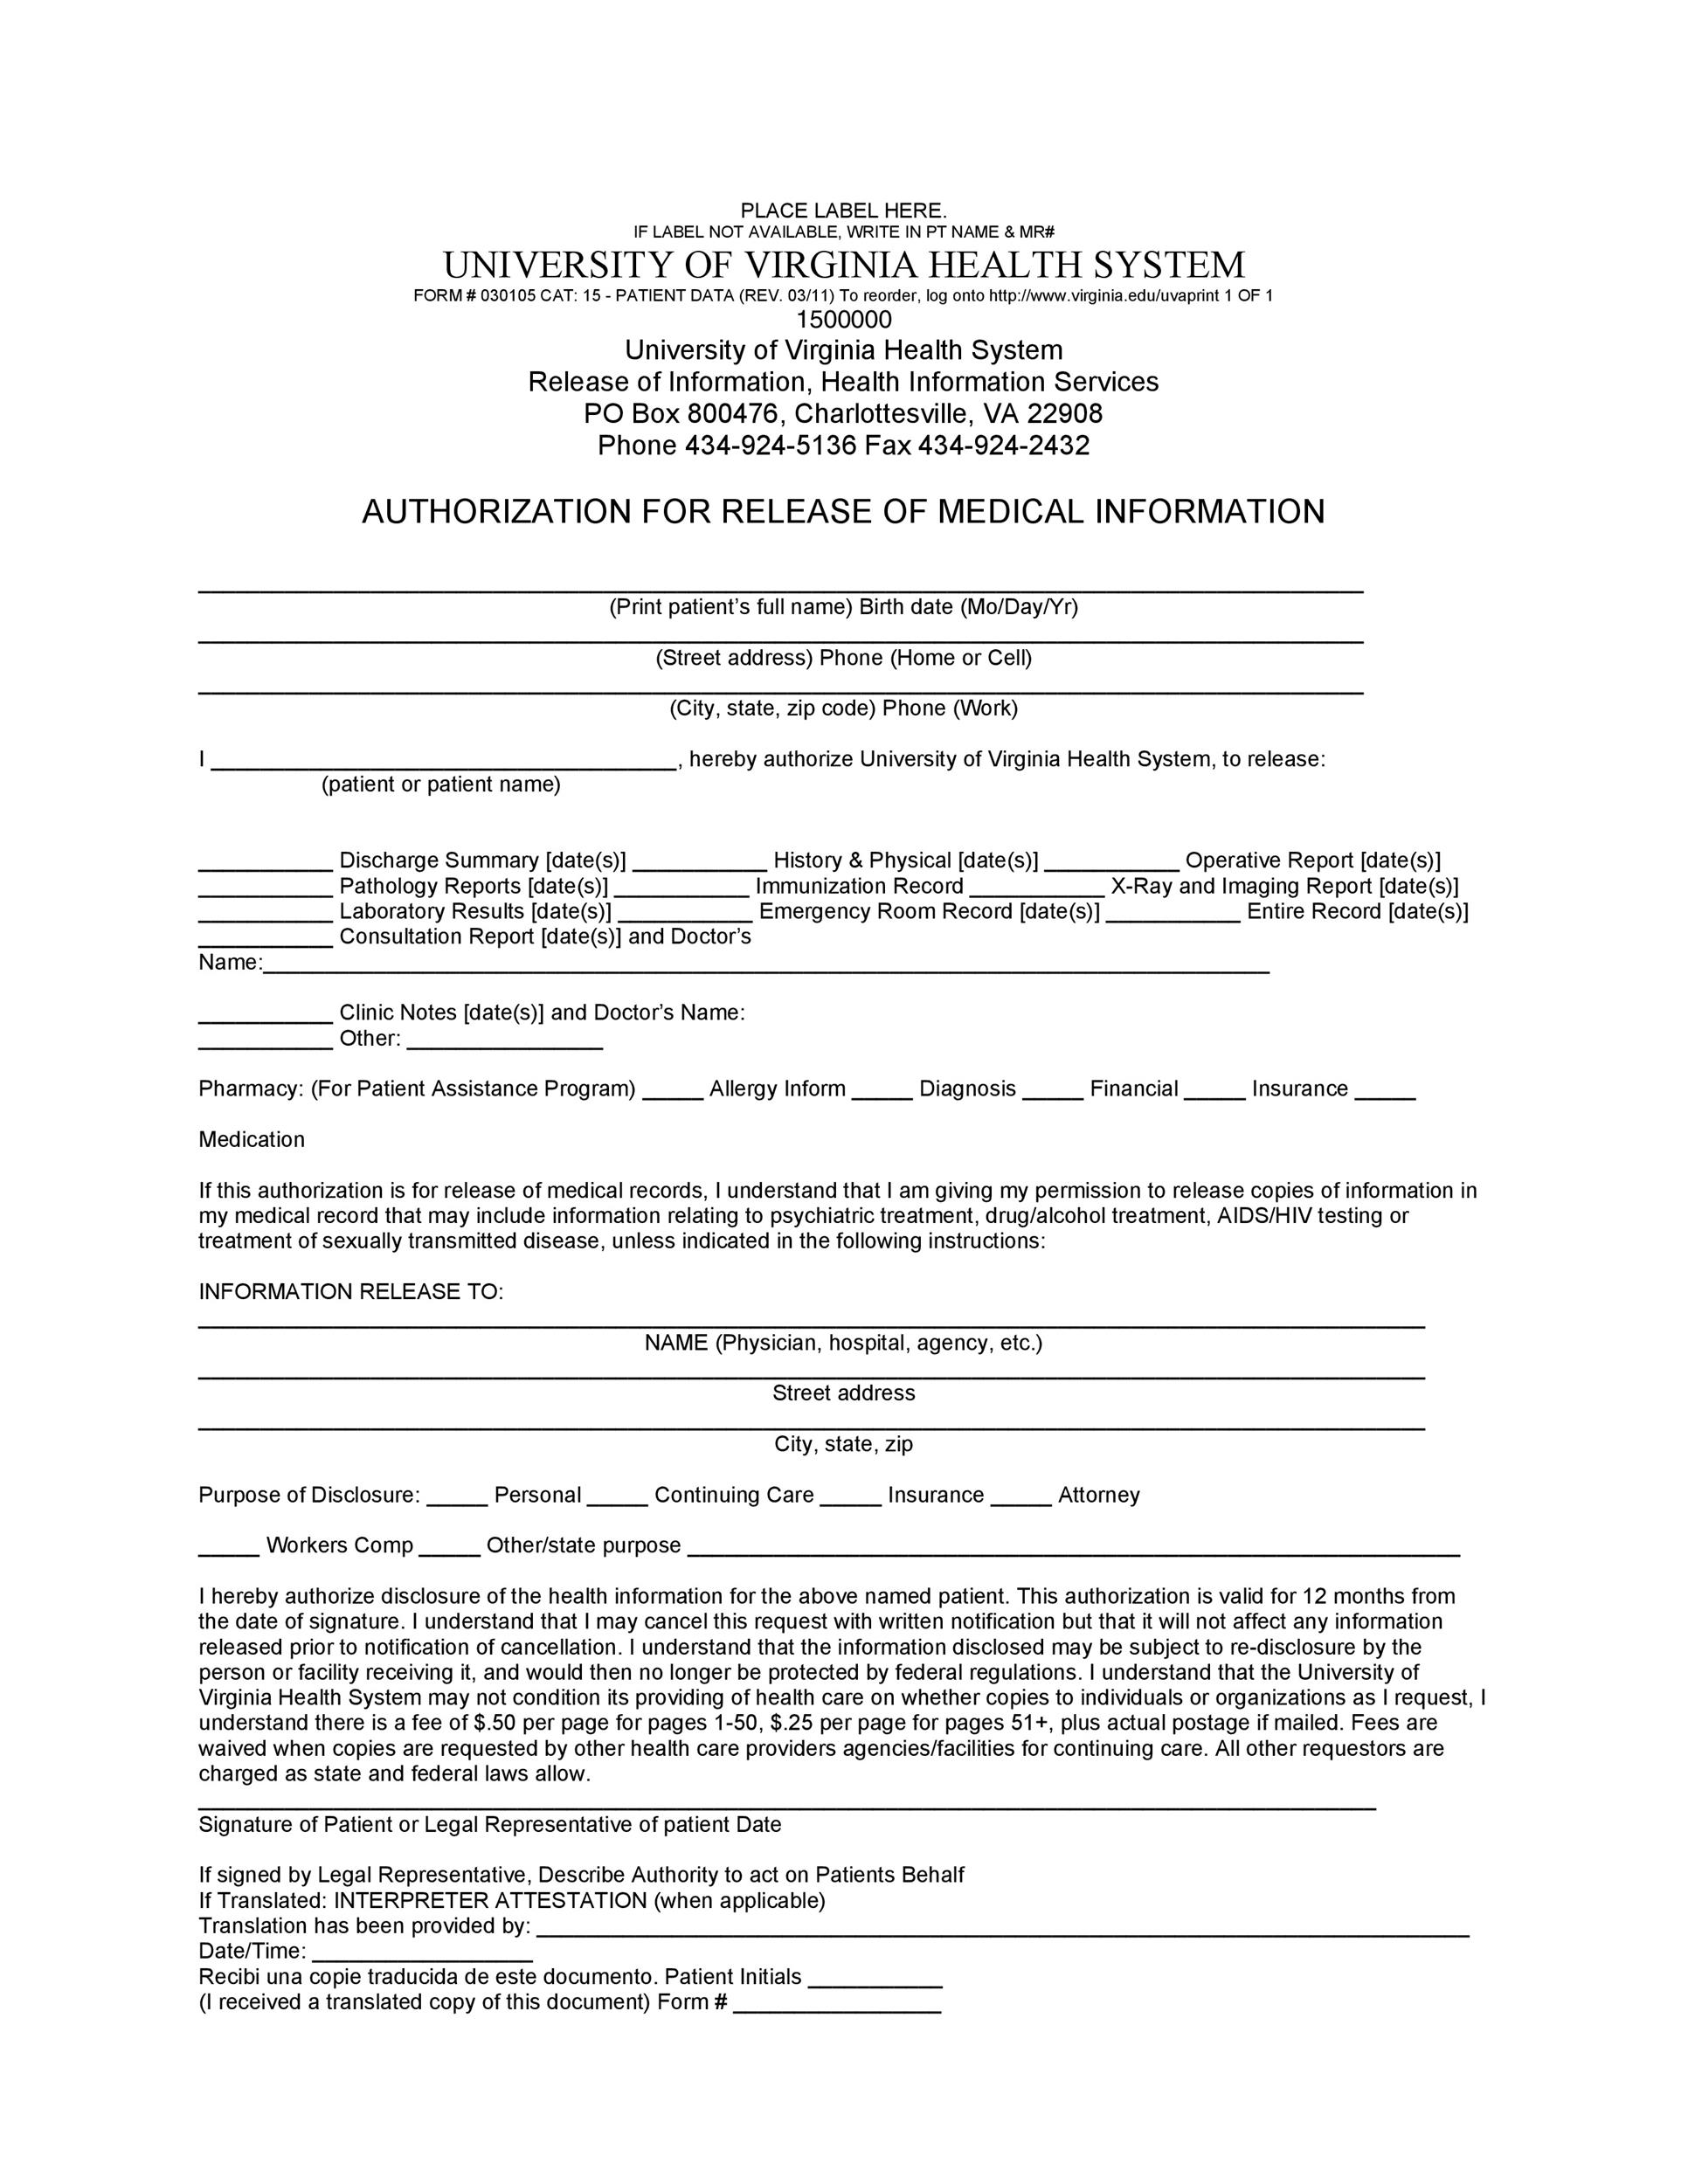 Free Medical Release Form 33